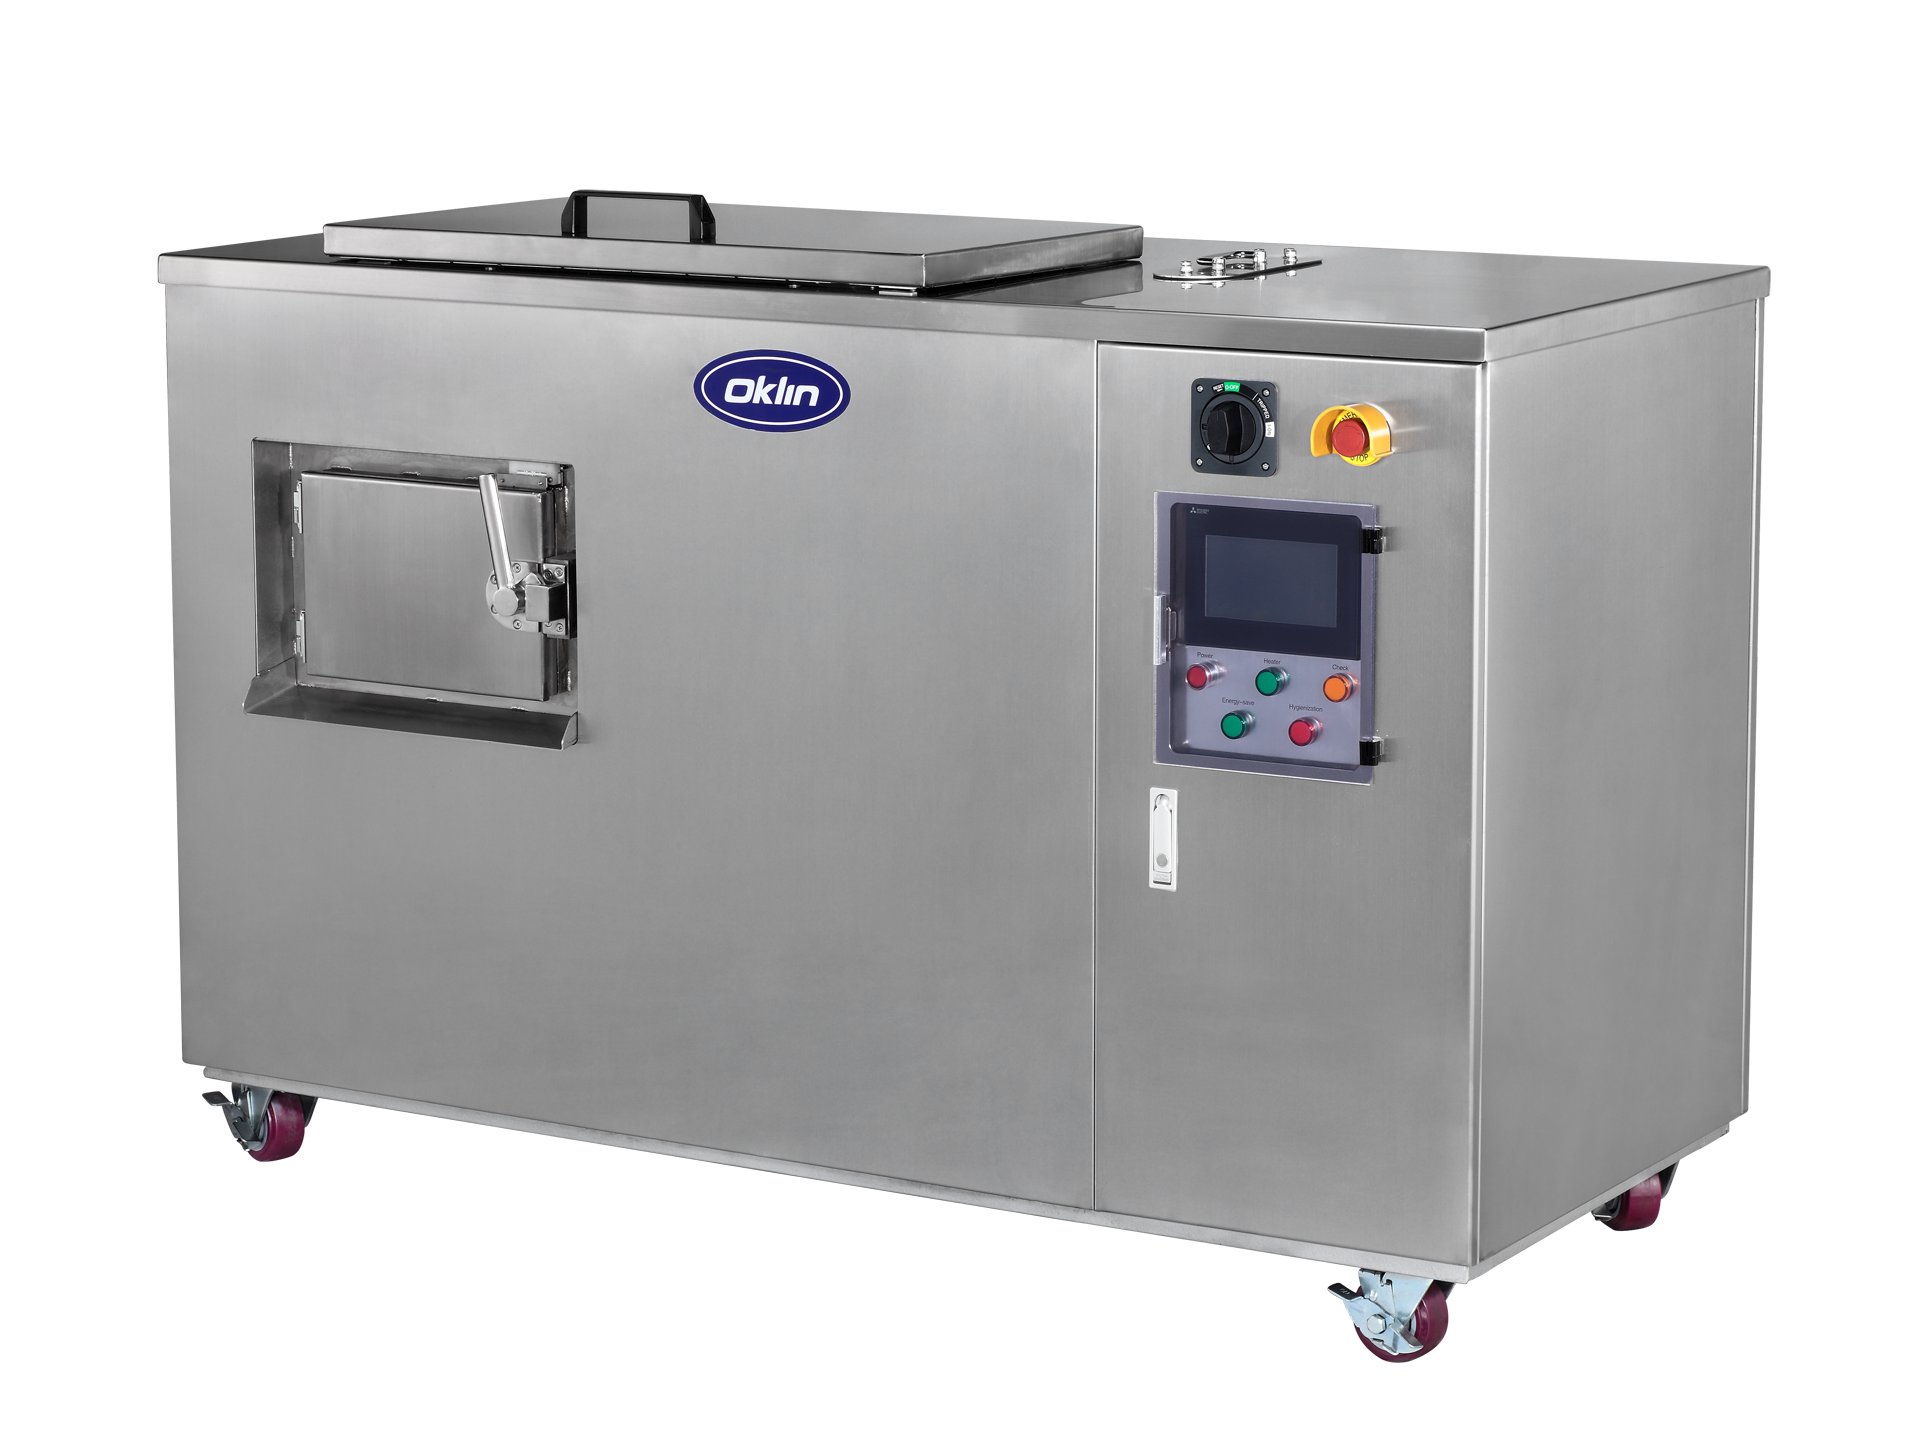 GG30s Composter | Commercial Compost Machine | Food Waste Composter